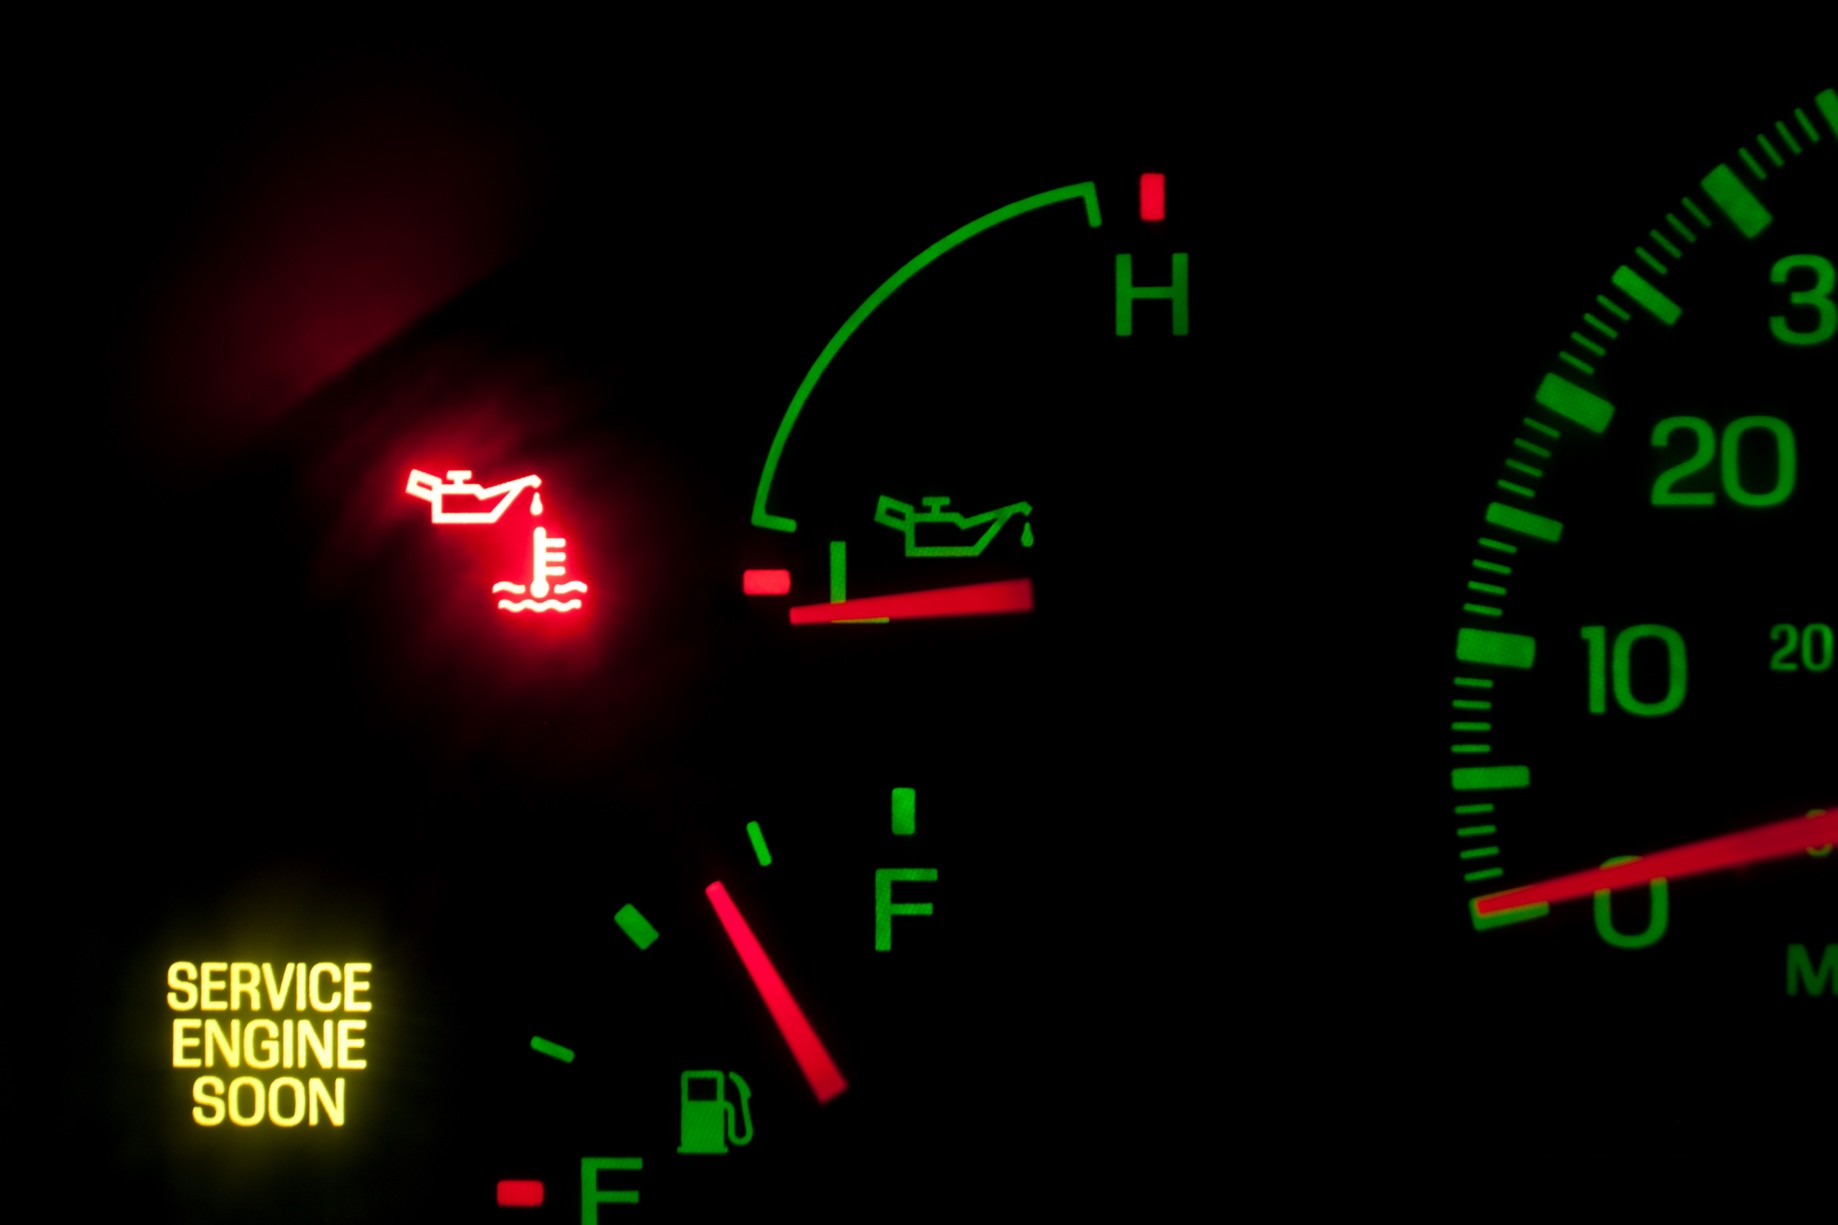 What Does the Oil Pressure Warning Light Mean? - Riverside